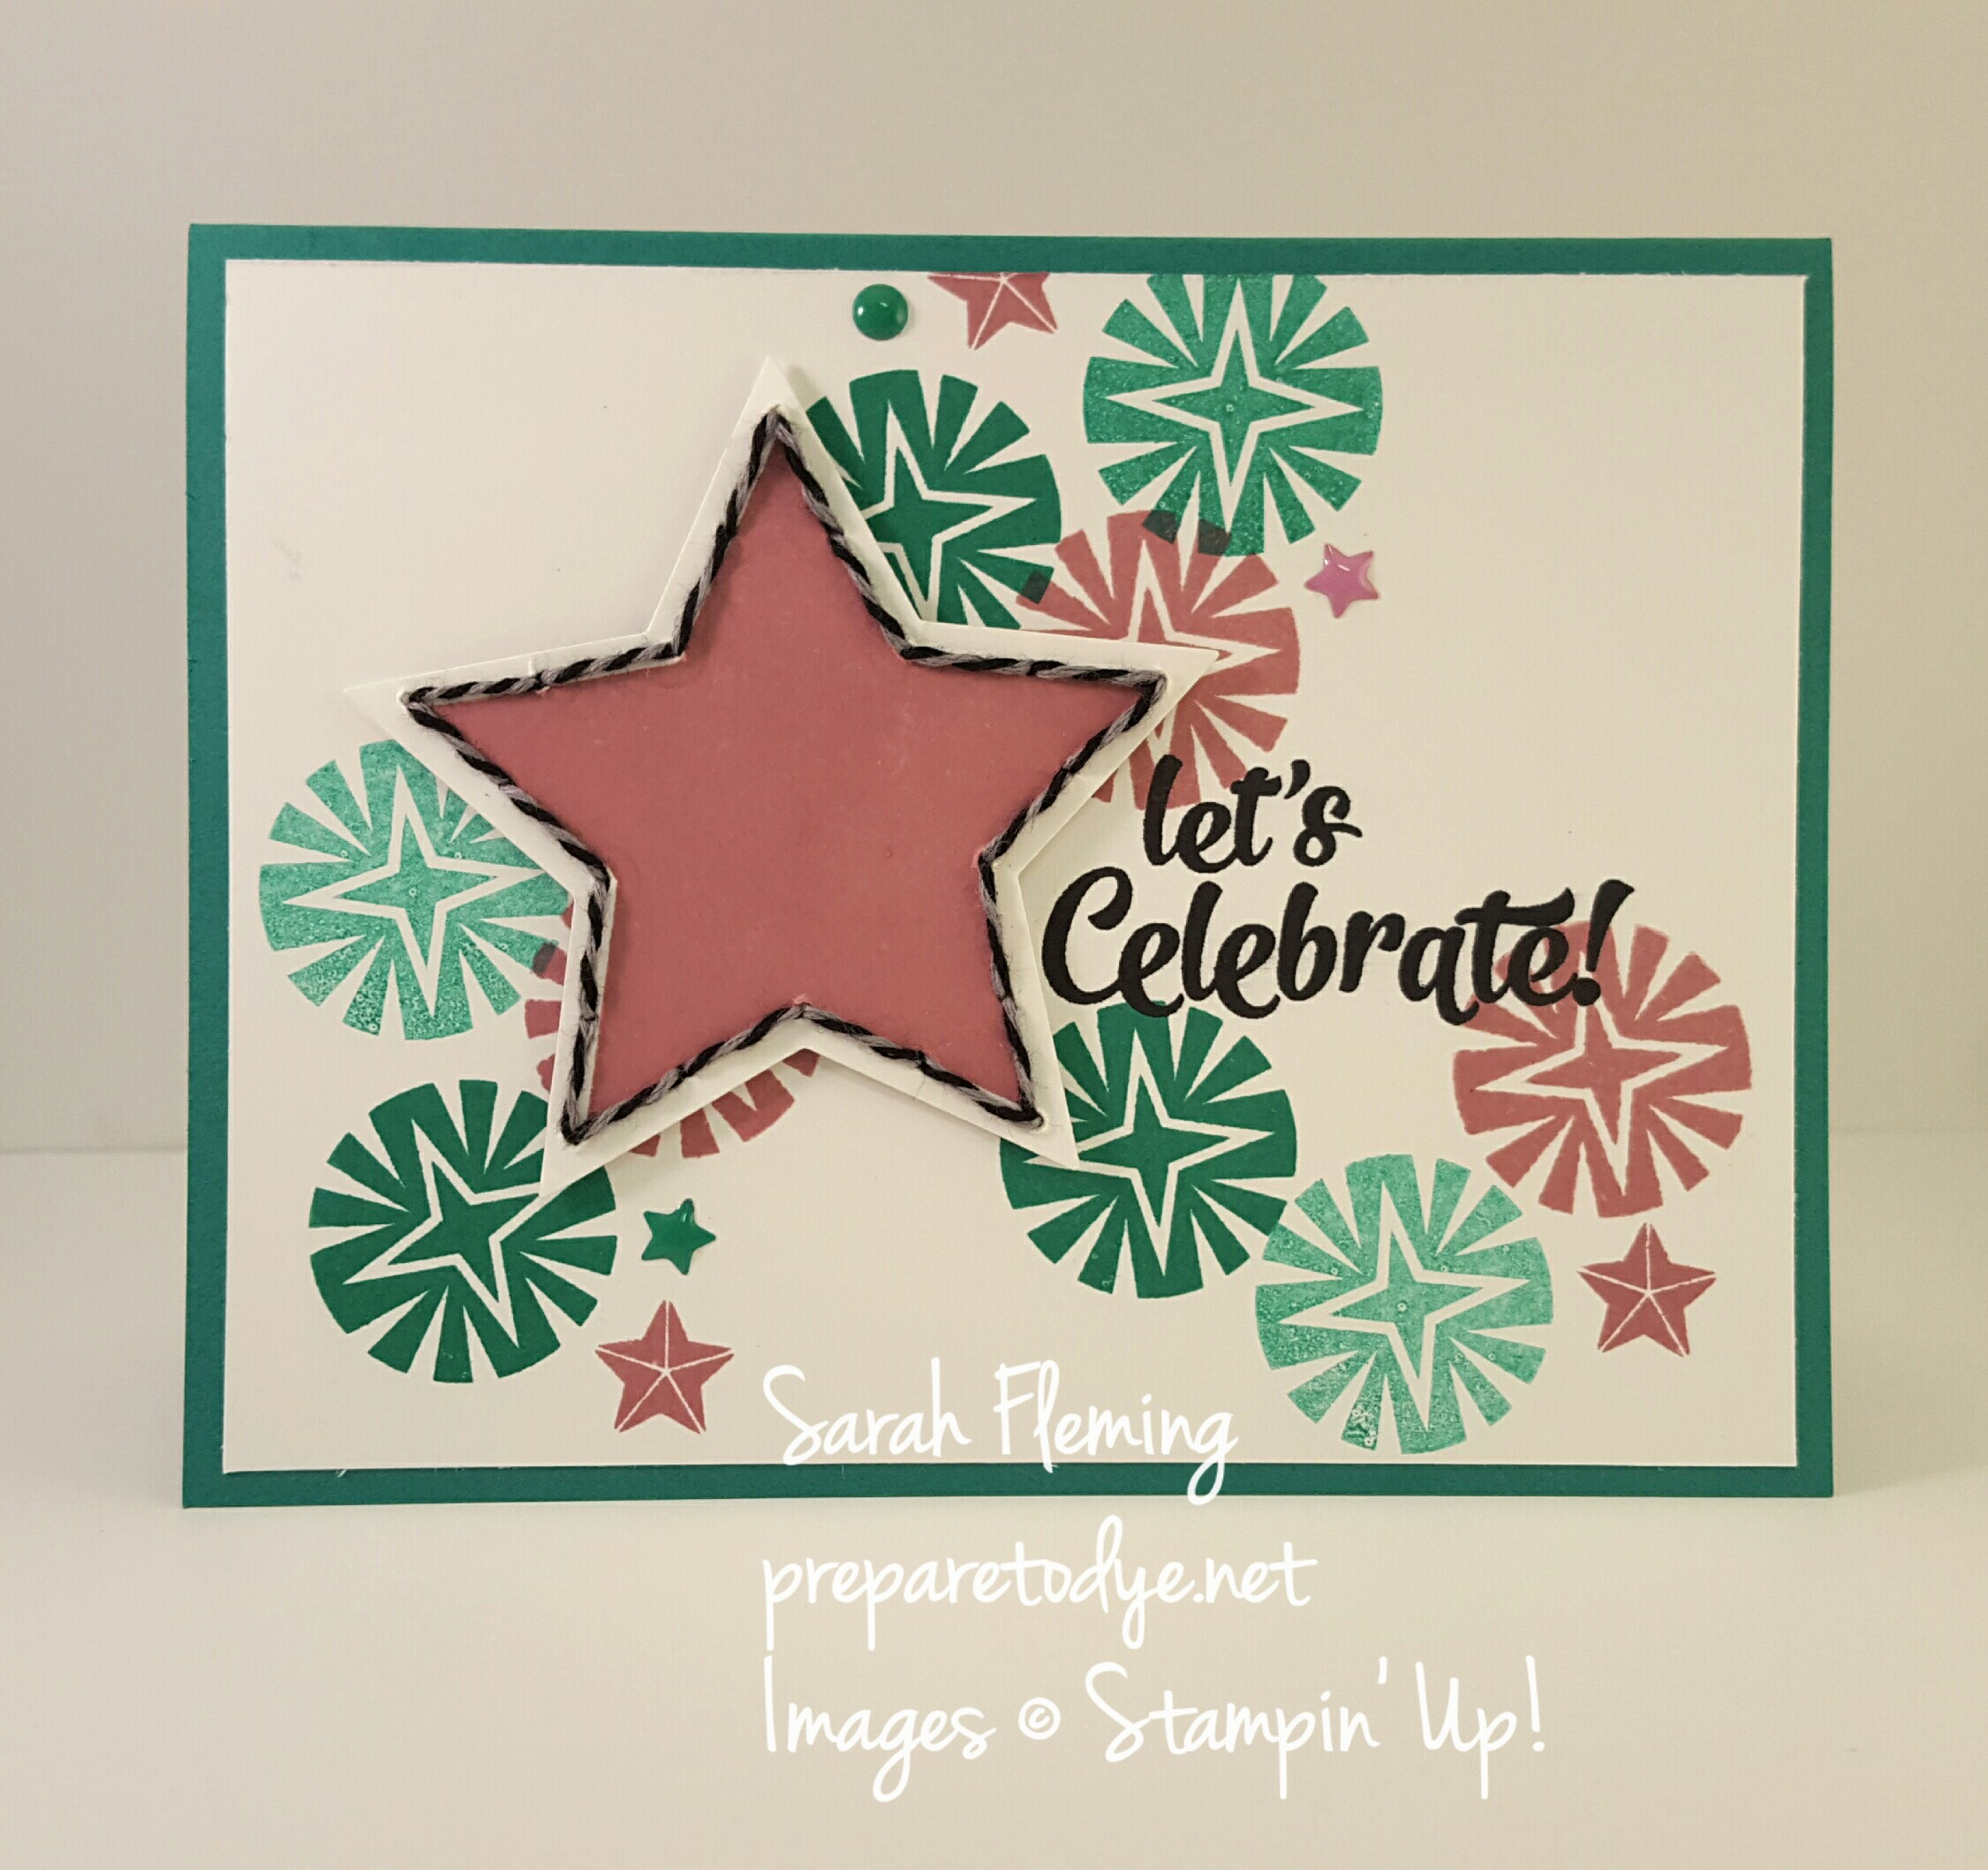 Stampin' Up! Festive Season and Confetti Celebration stamps and Festive Stitching Thinlits make a fabulous any-occasion card - handmade cards - Sarah Fleming - Prepare to Dye Papercrafts